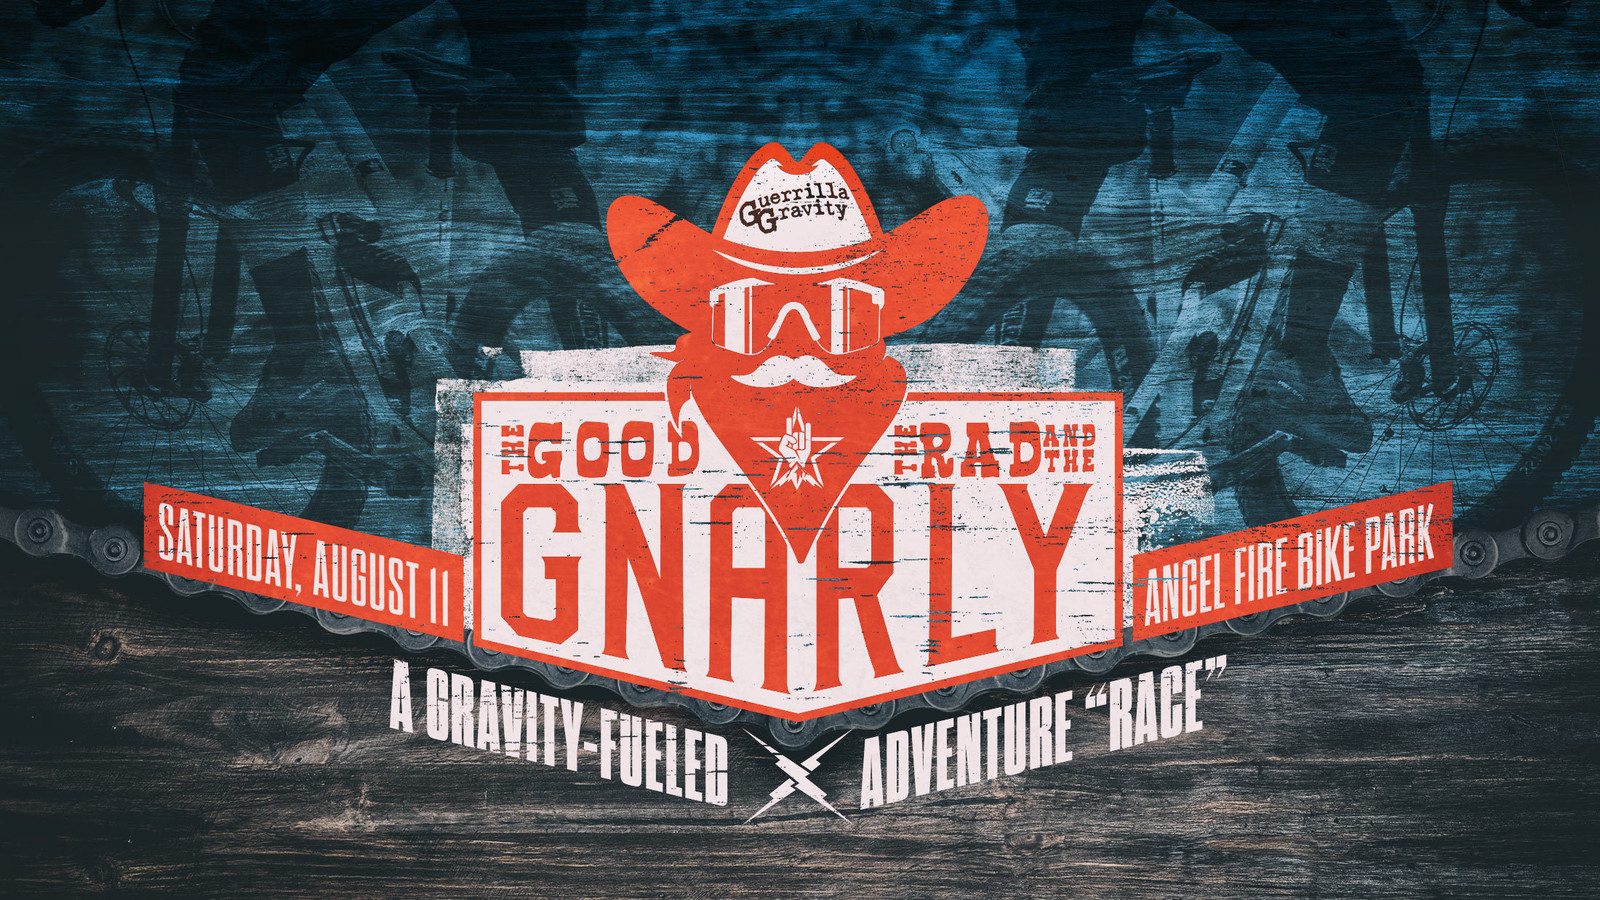 Guerrilla Gravity Presents 'The Good, The Rad, and The Gnarly' – A Gravity-Fueled Adventure